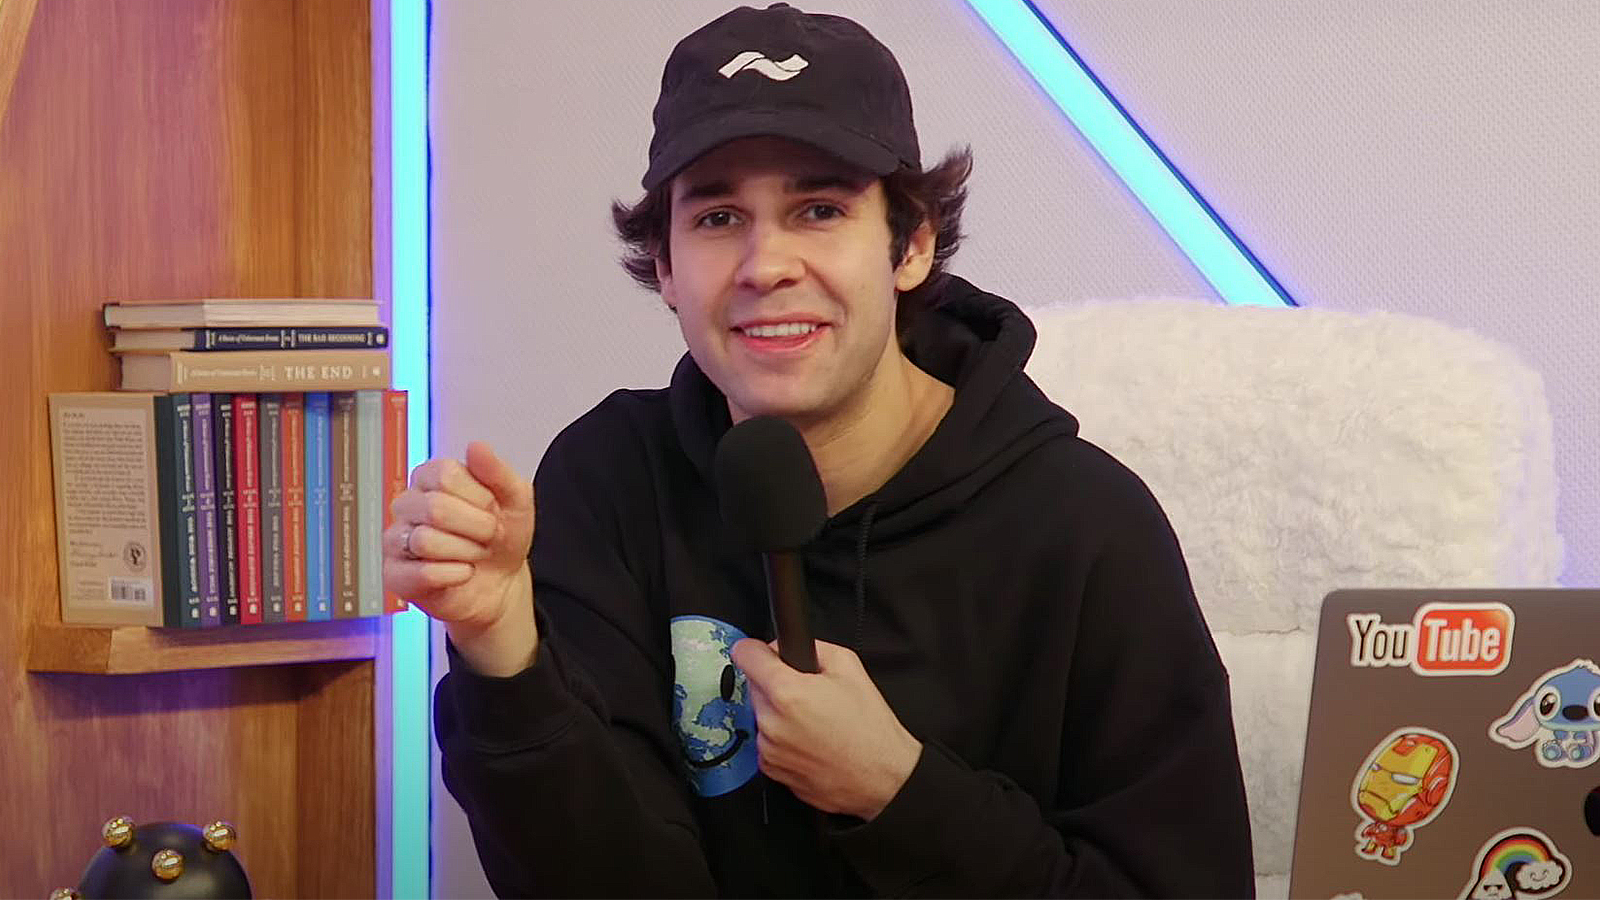 David Dobrik returns to YouTube